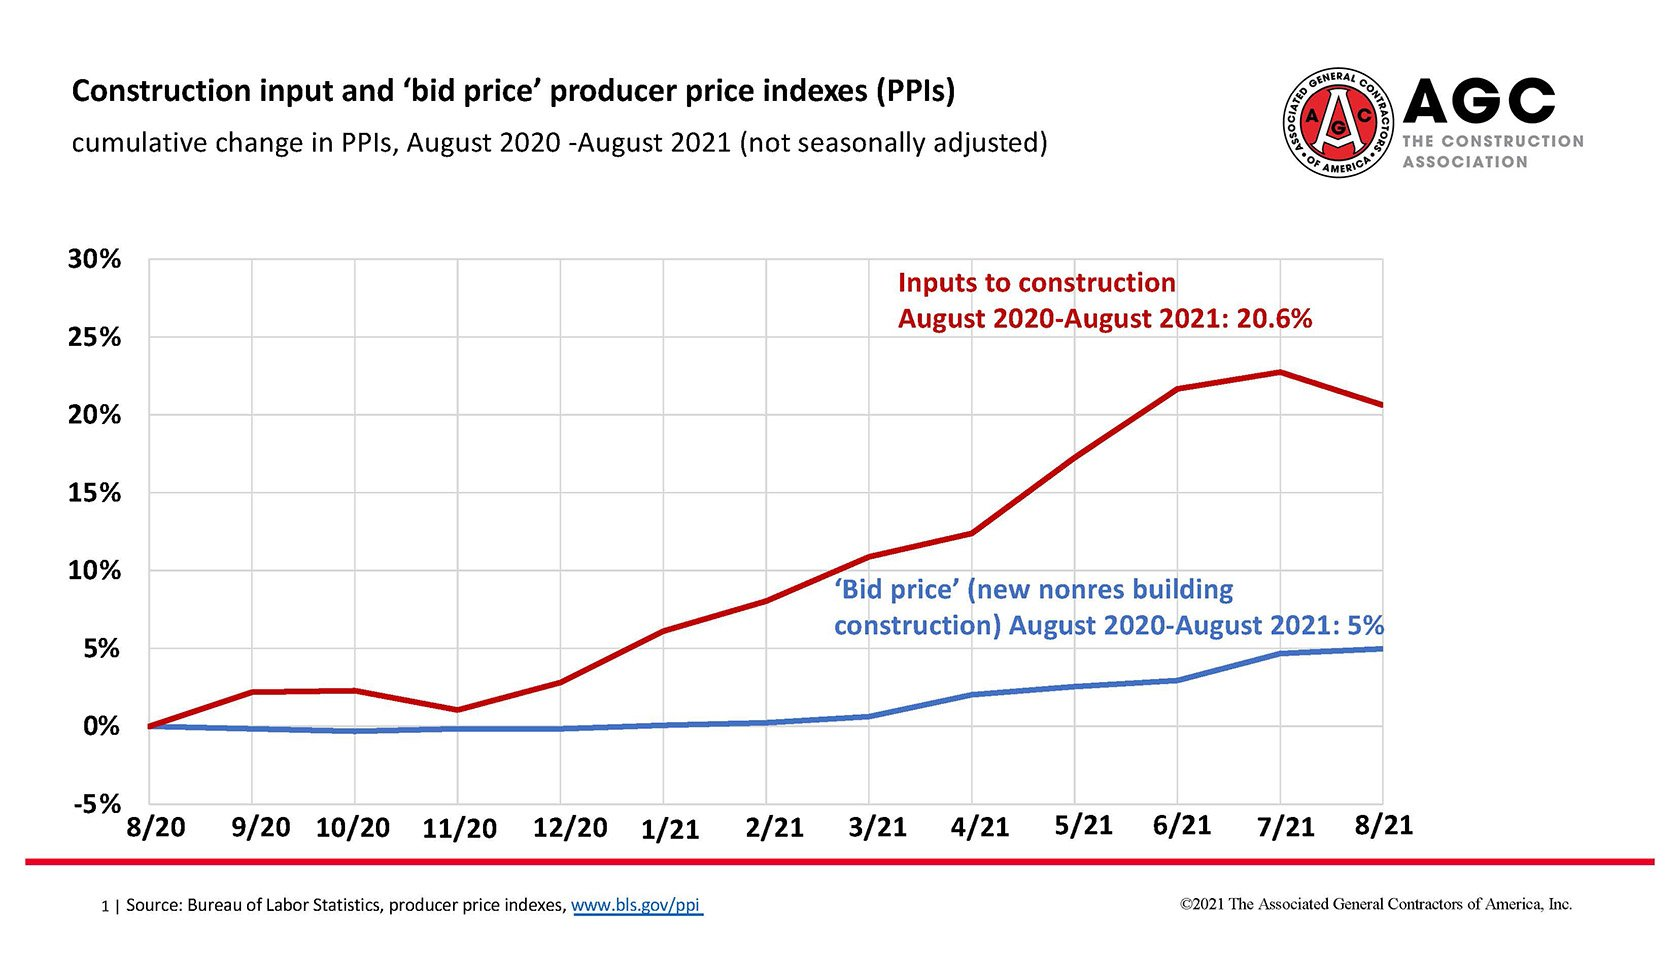 AGC producer price indexes (PPIs)